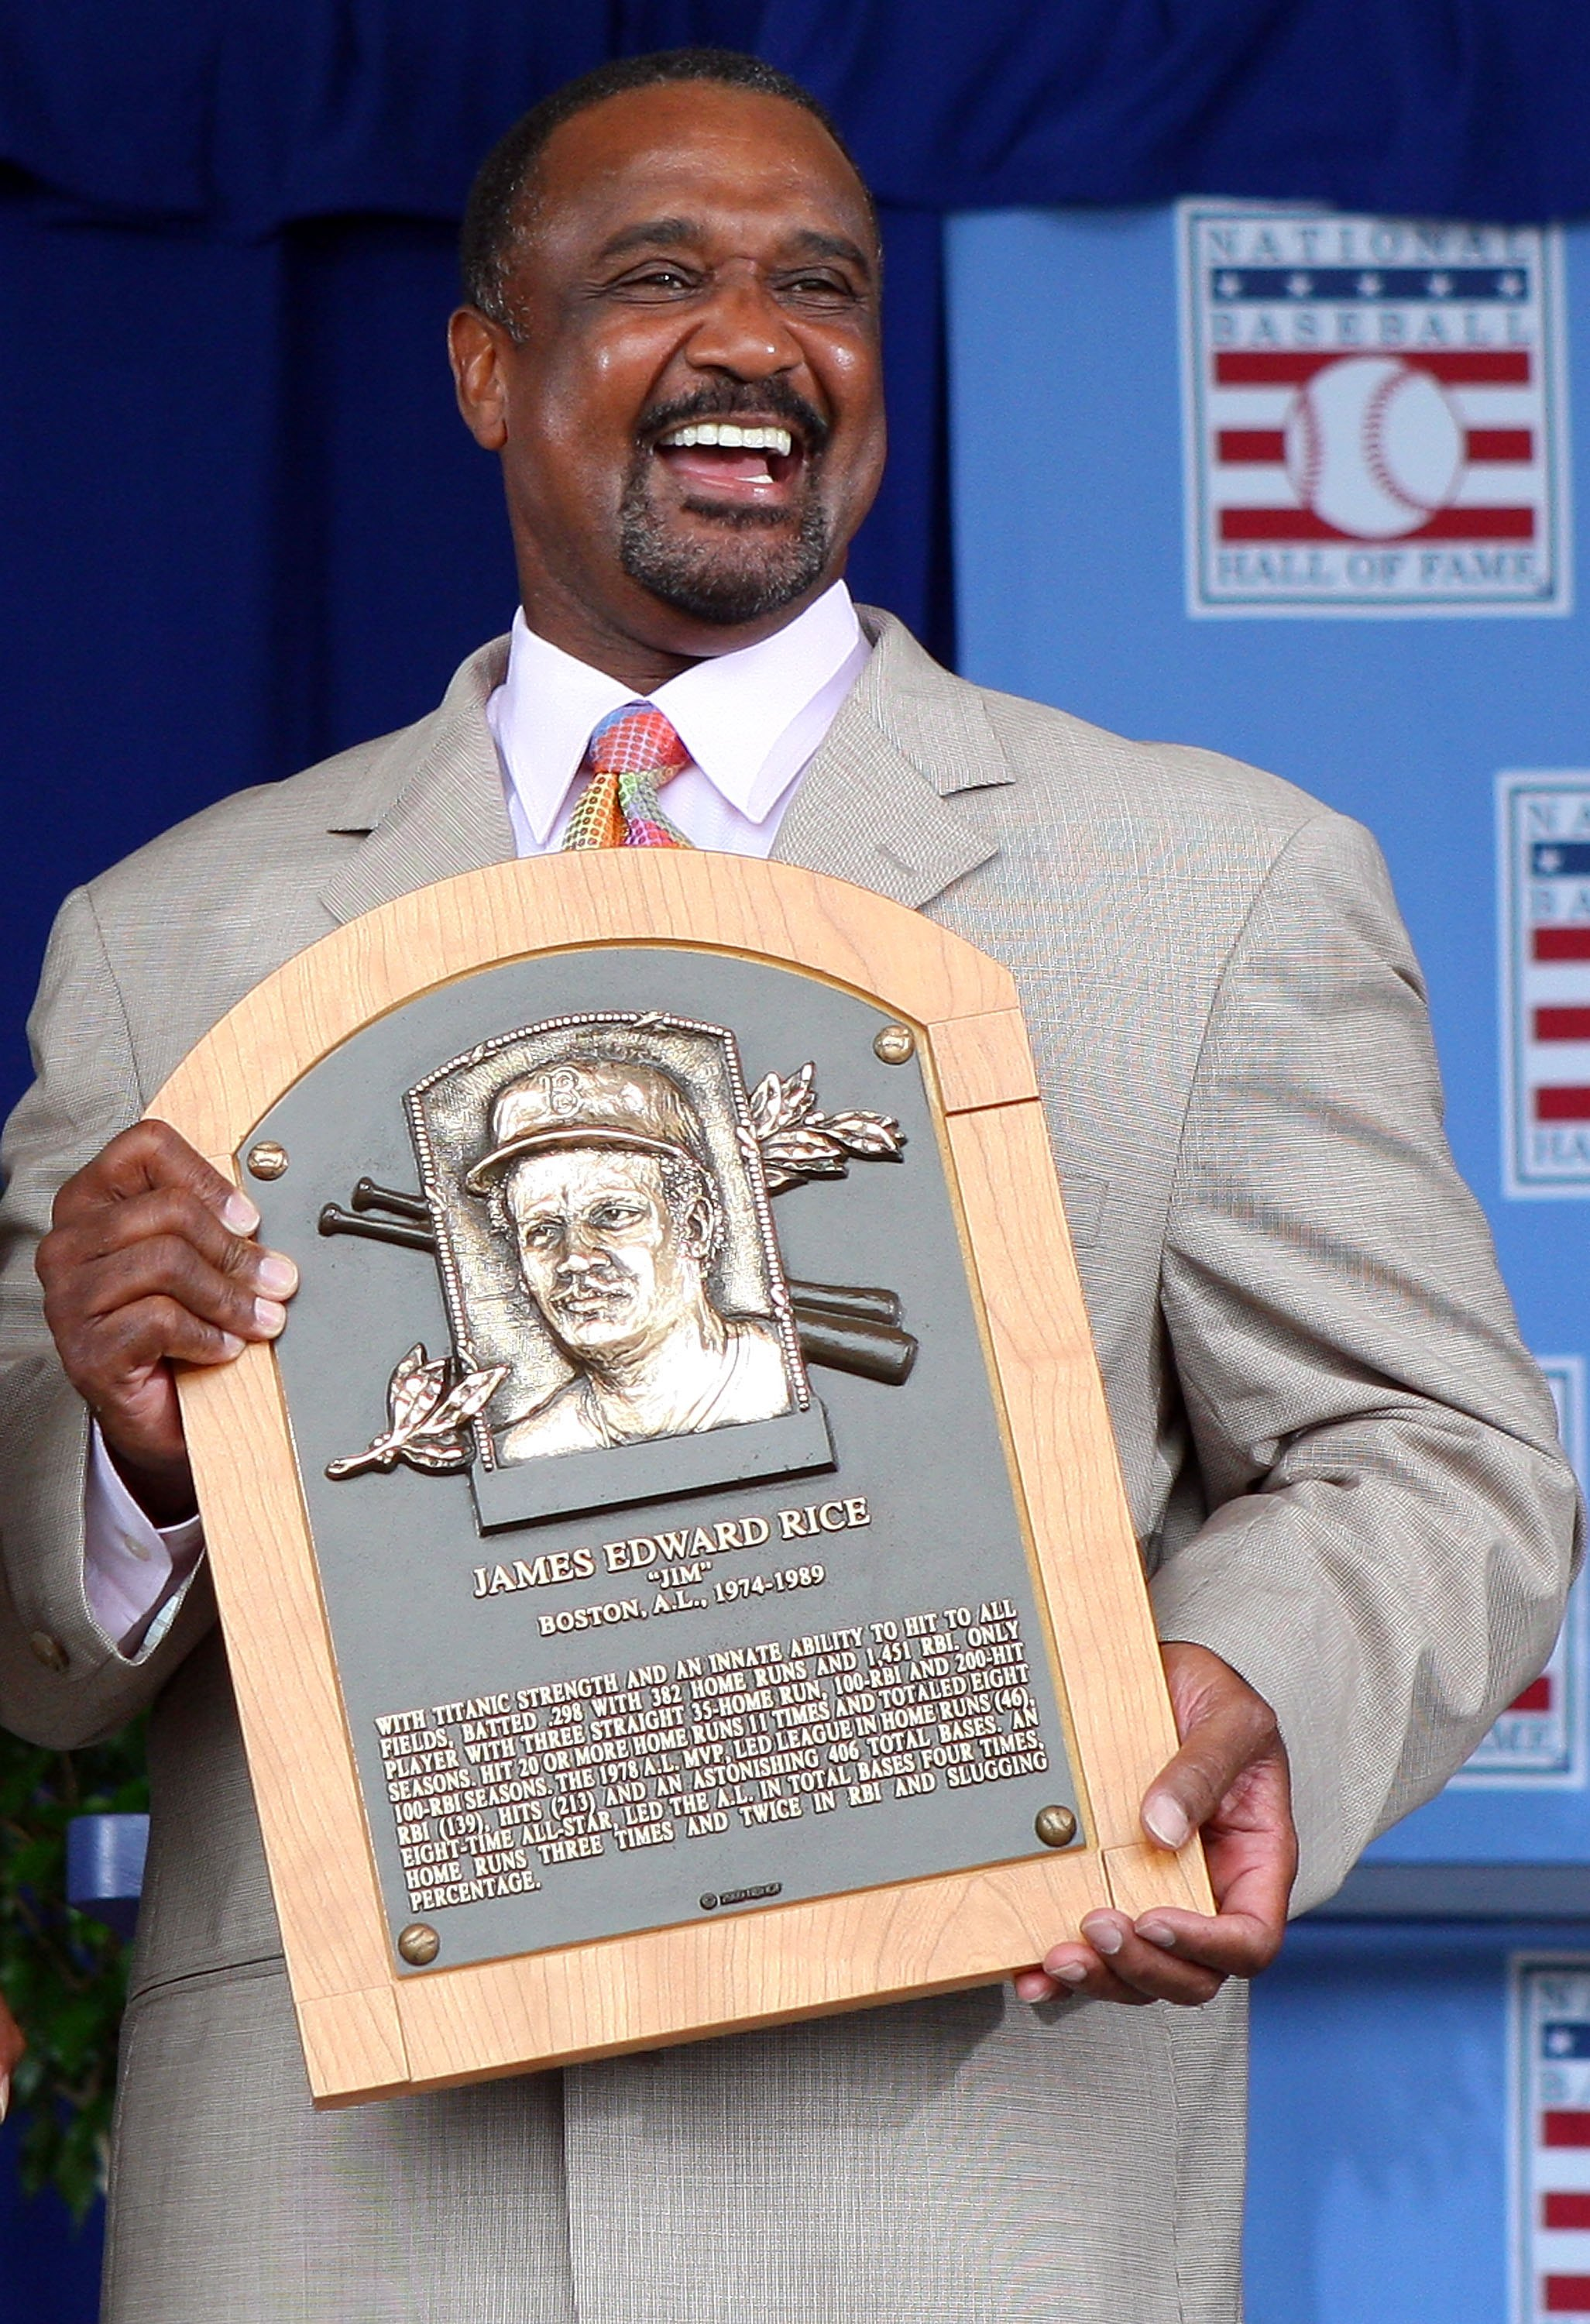 COOPERSTOWN, NY - JULY 26:  2009 inductee Jim Rice holds his plaque at Clark Sports Center after his induction into the Baseball Hall of Fame during the Baseball Hall of Fame induction ceremony on July 26, 2009 in Cooperstown, New York. Rice played his en